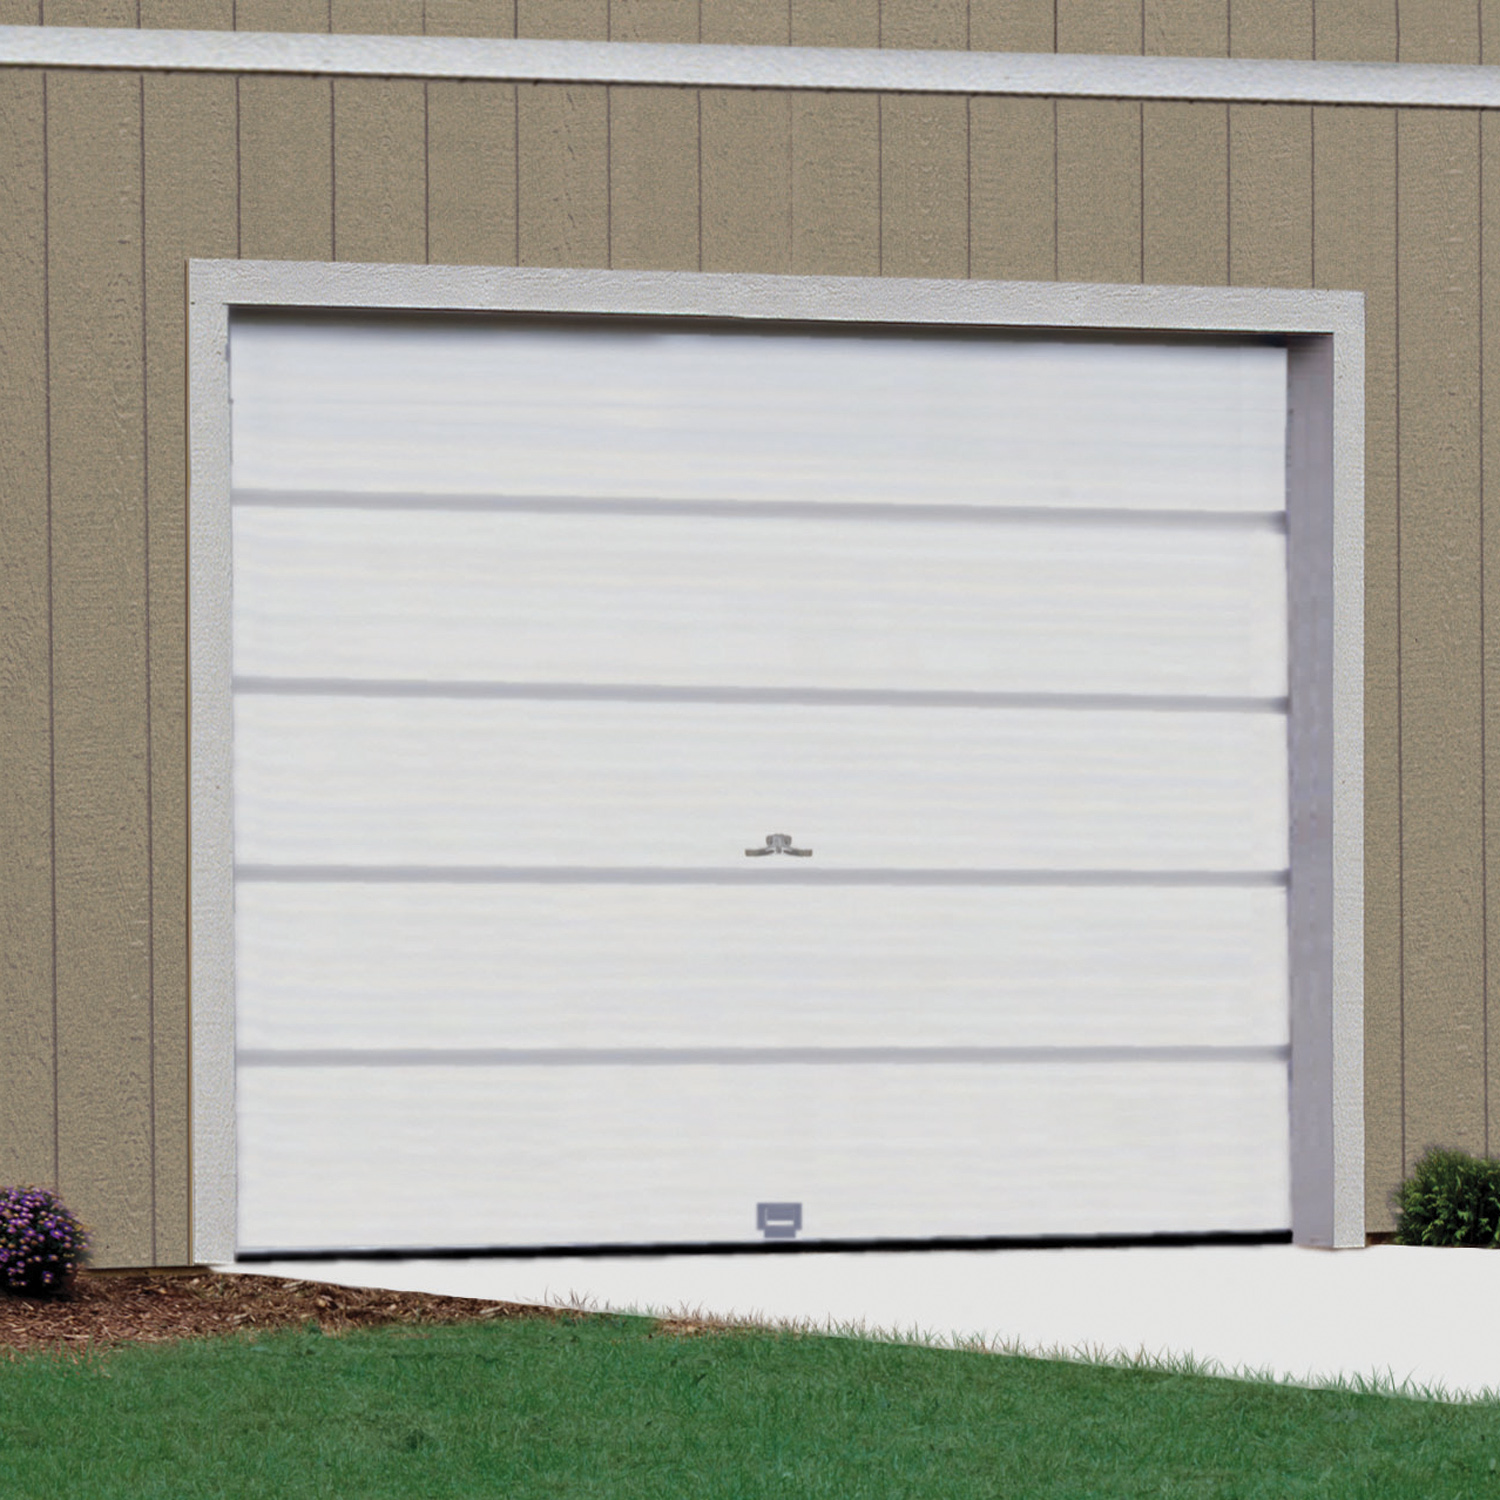 8ft. X 7ft. Sectional Garage Door